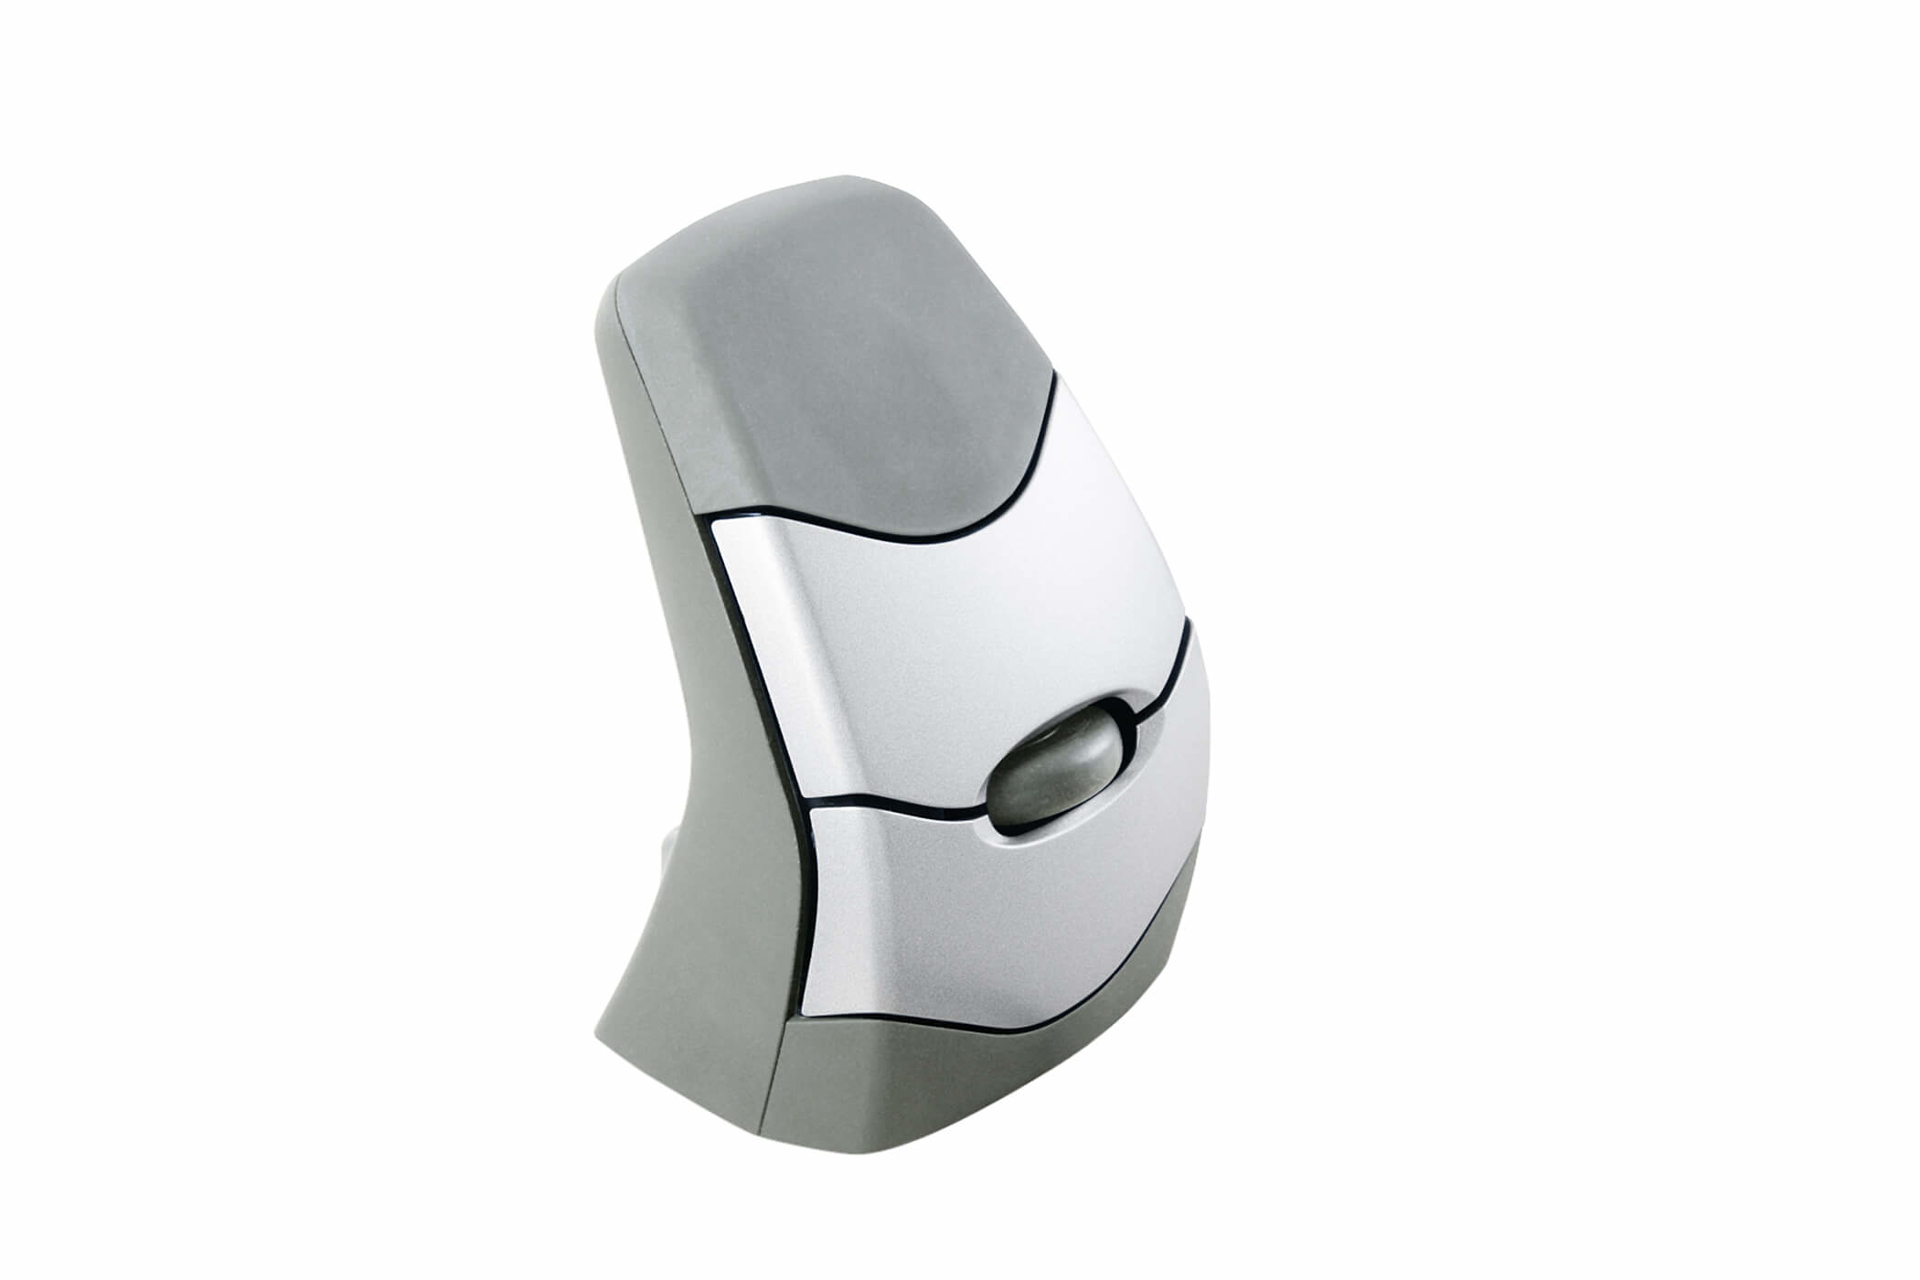 DXT Precision Mouse draadloos